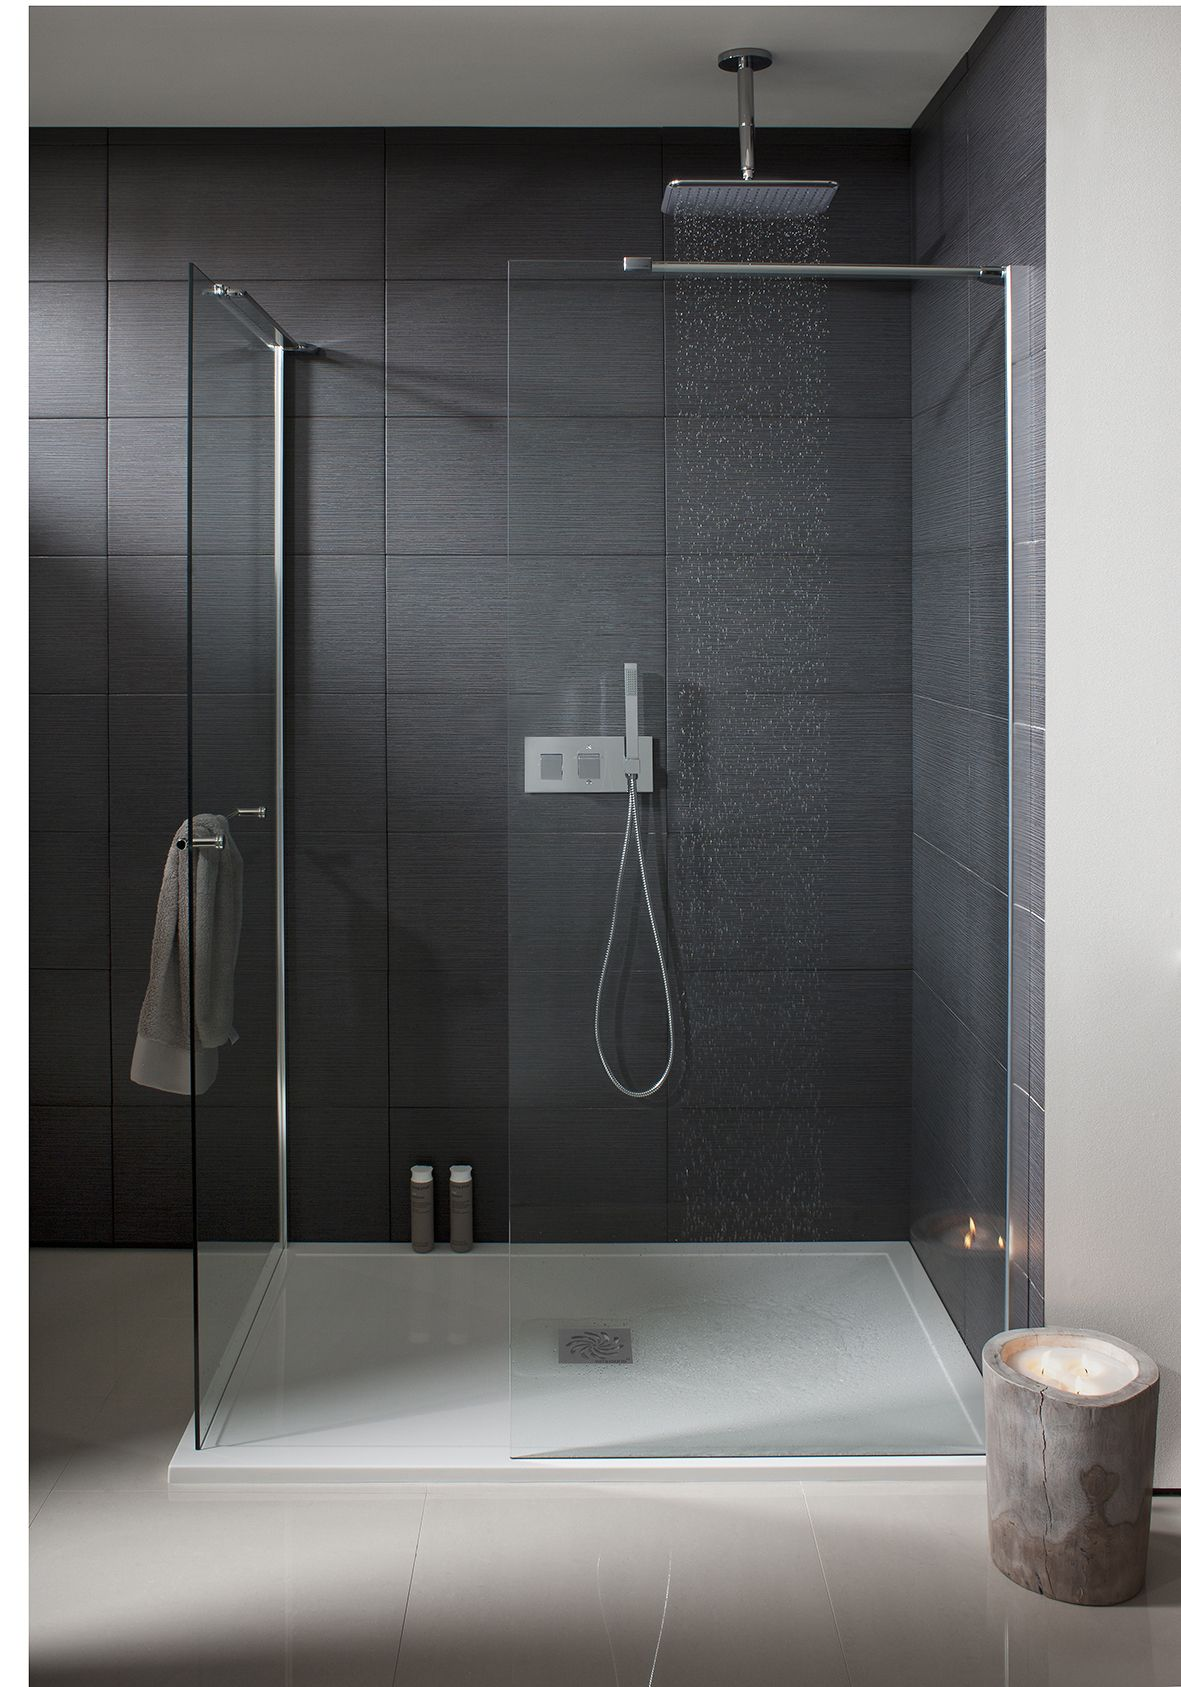 Design Walk In Bathroom Shower Panel With Towel Rail From Crosswater Http Www Simpsons Enclosure Bathroom Shower Panels Bathroom Shower Bathroom Shower Tile